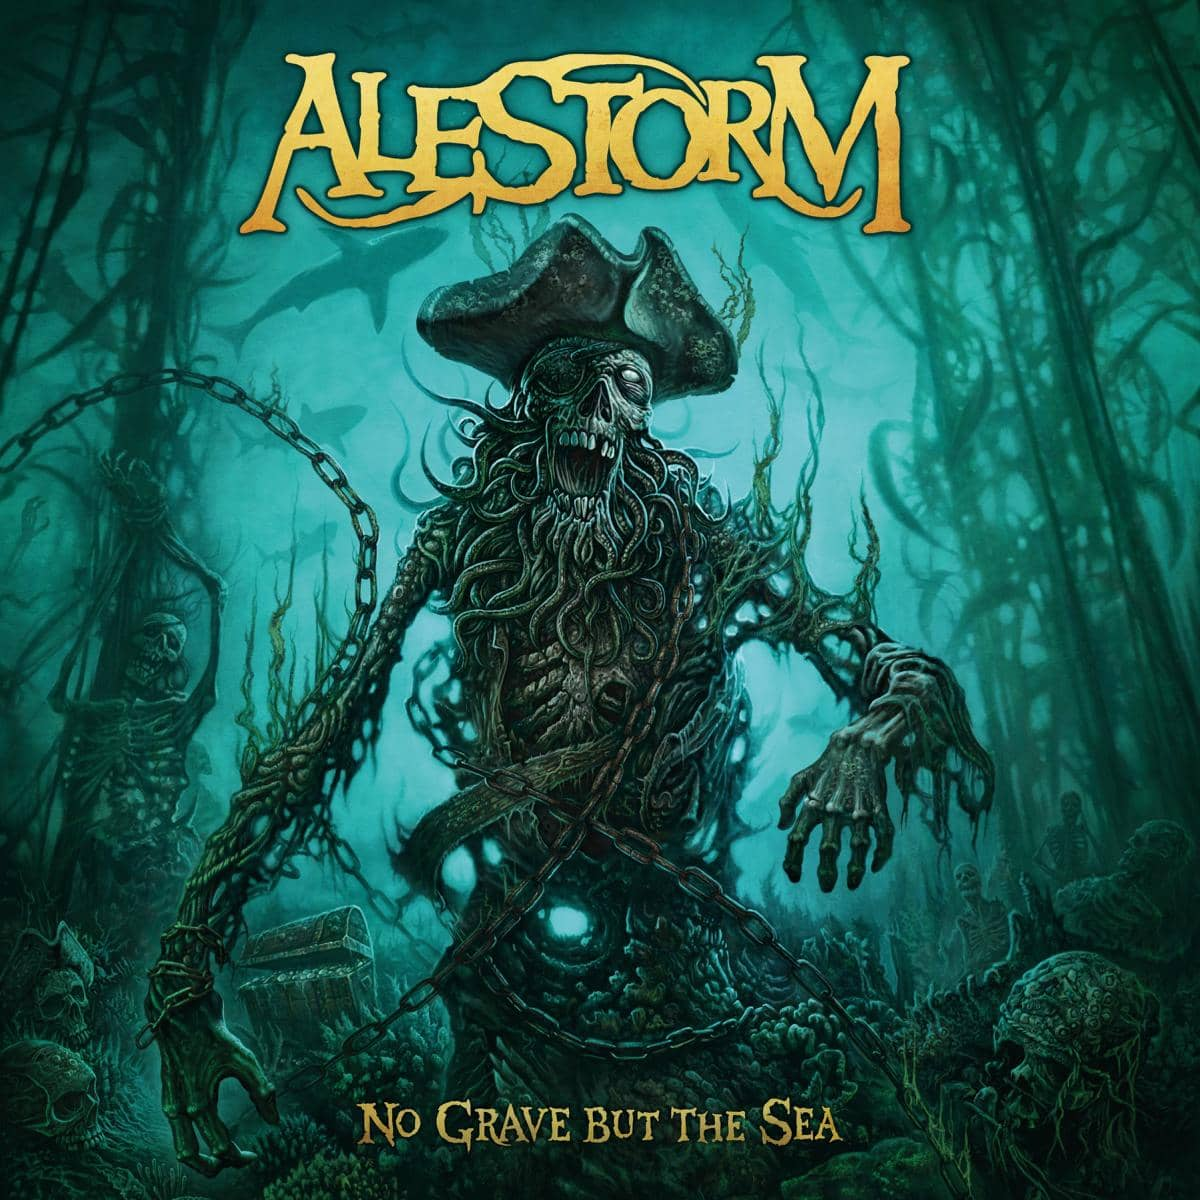 ALESTORM (VCT) – No grave but the sea, 2017